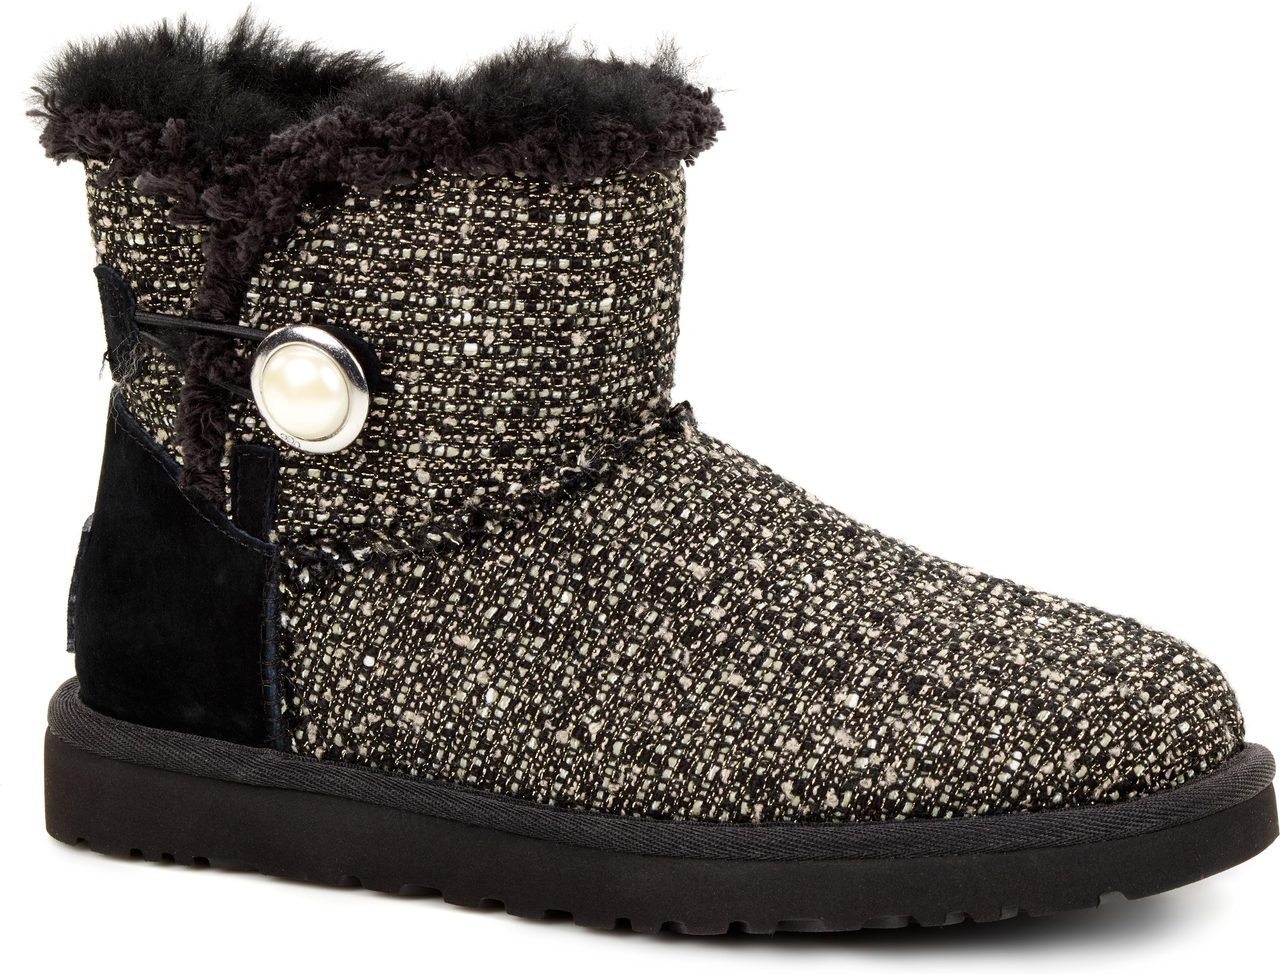 cdf184c6db1 promo code ugg mini bailey button fancy black number e1f3f bb0ca